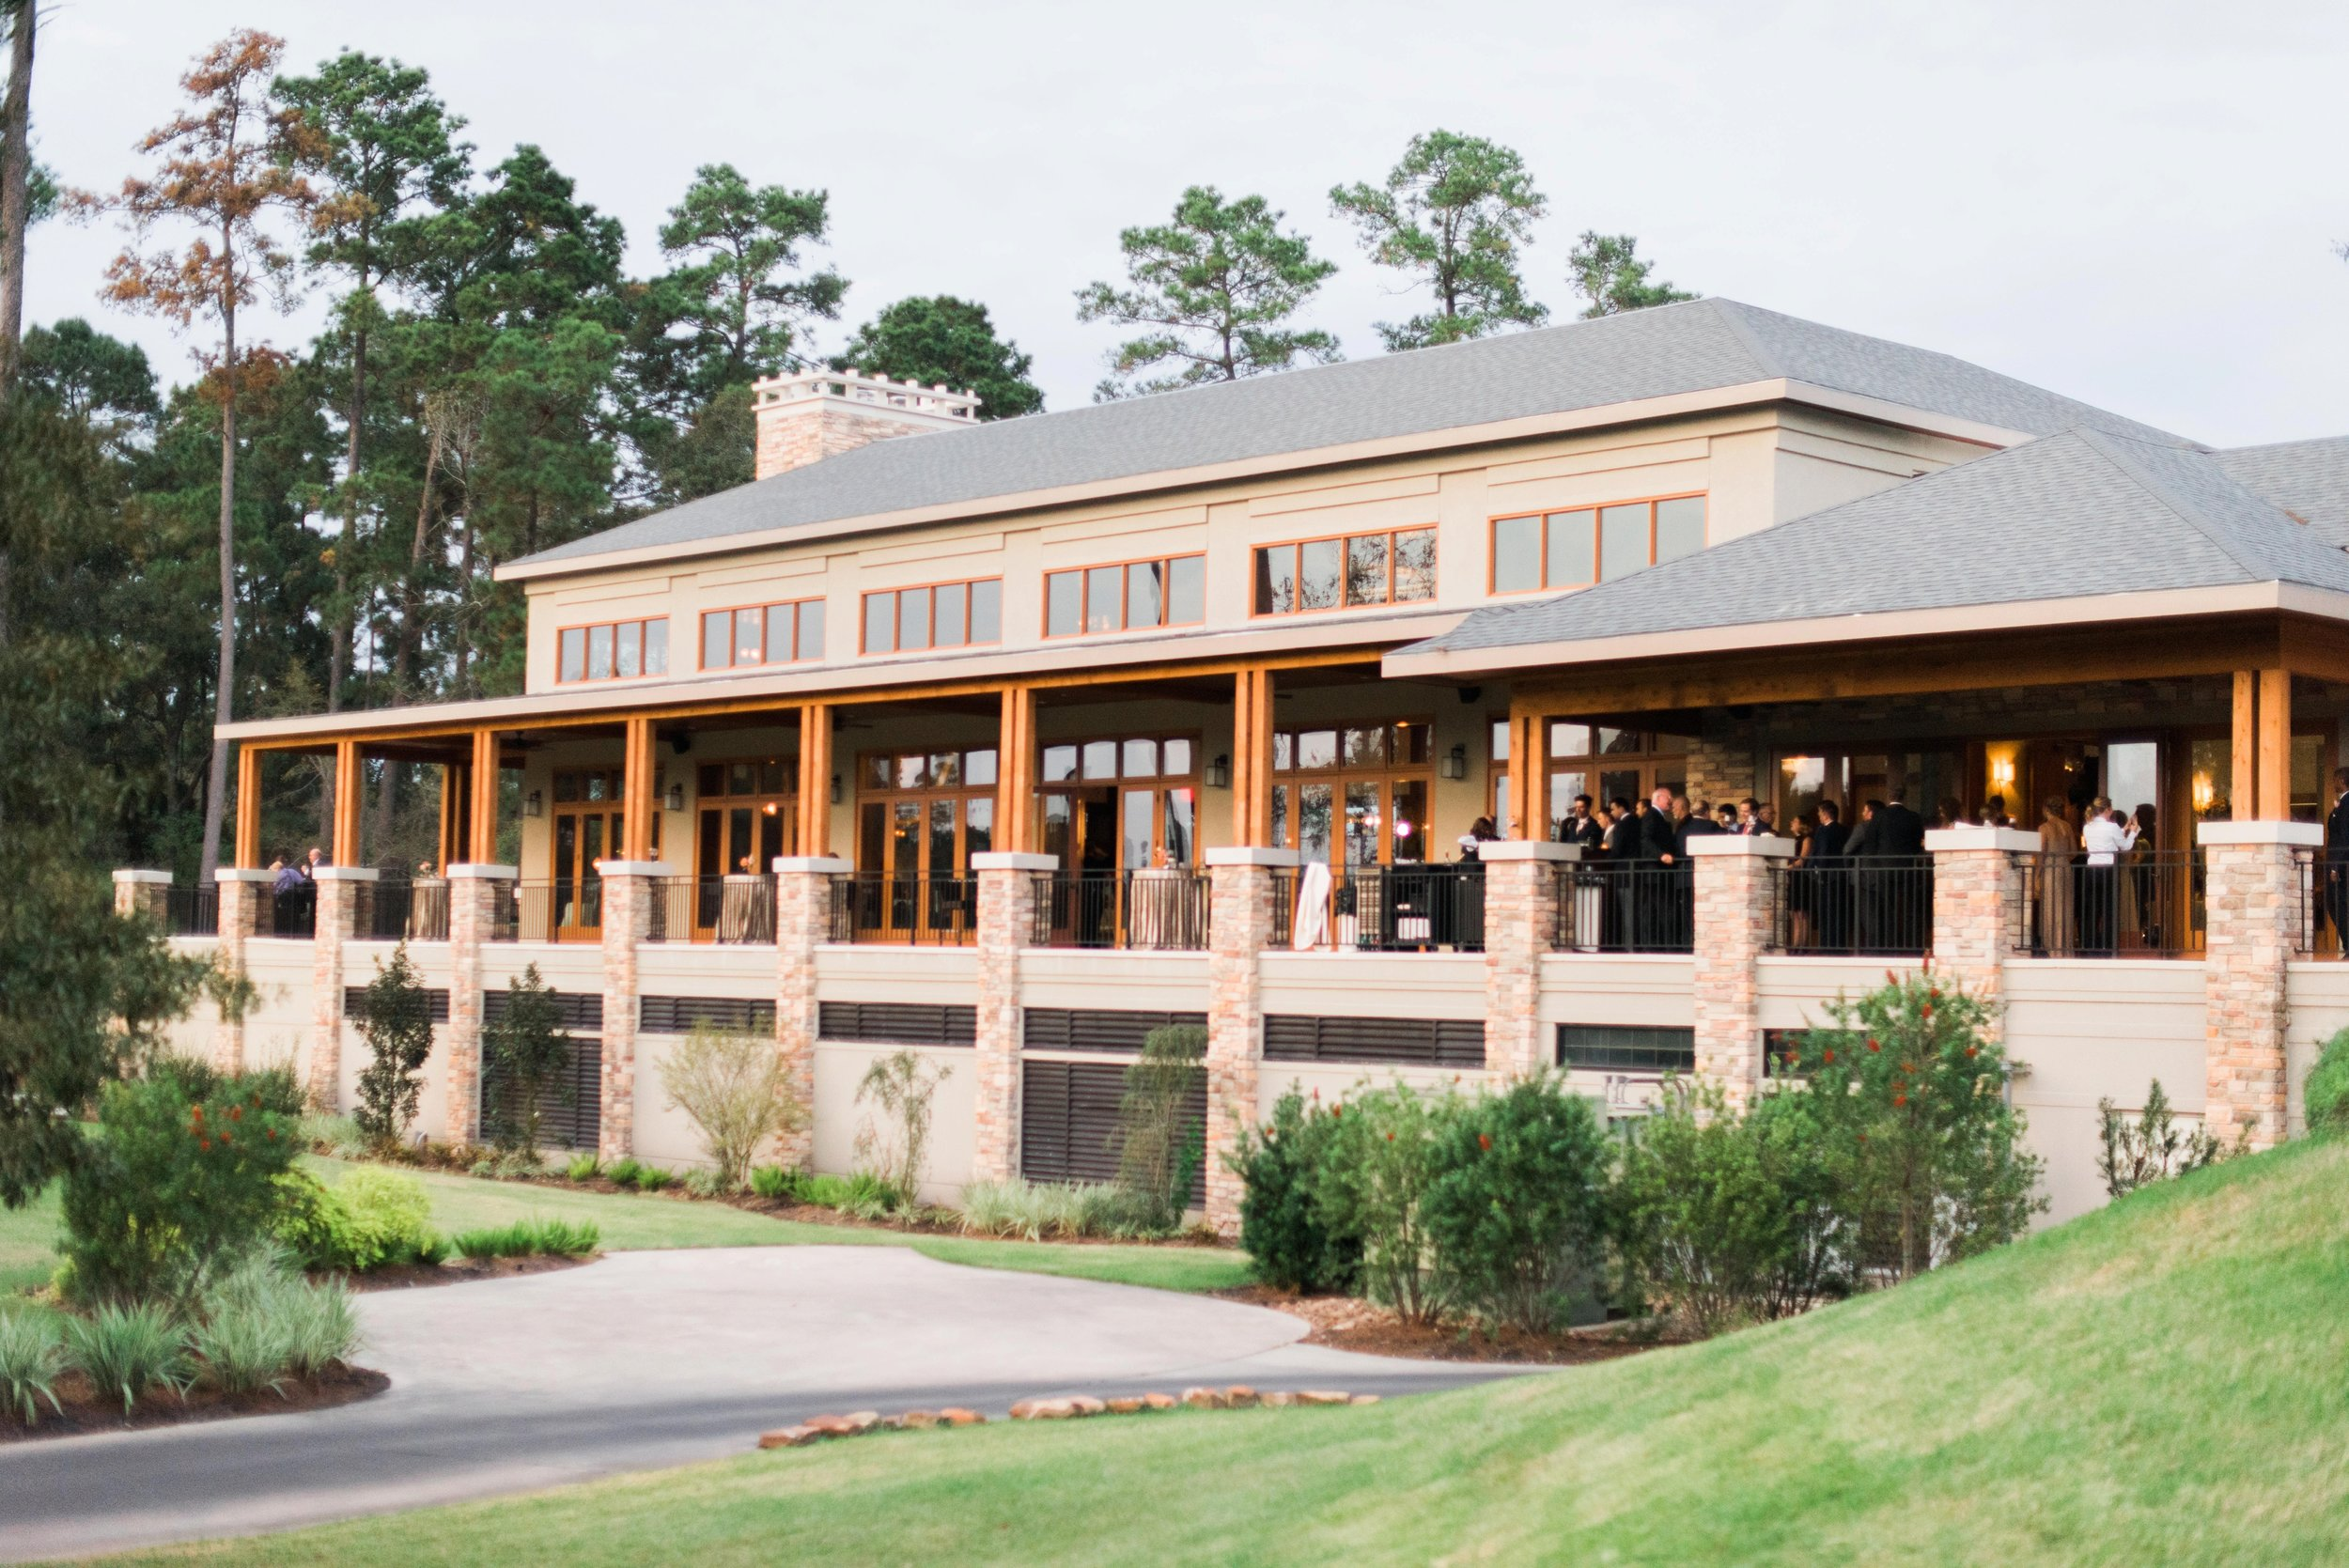 The-Woodlands-Country-Club-Palmer-Course-Wedding-Venue-Houston-Texas-Wedding-Photographer-Photography-Film-4.jpg